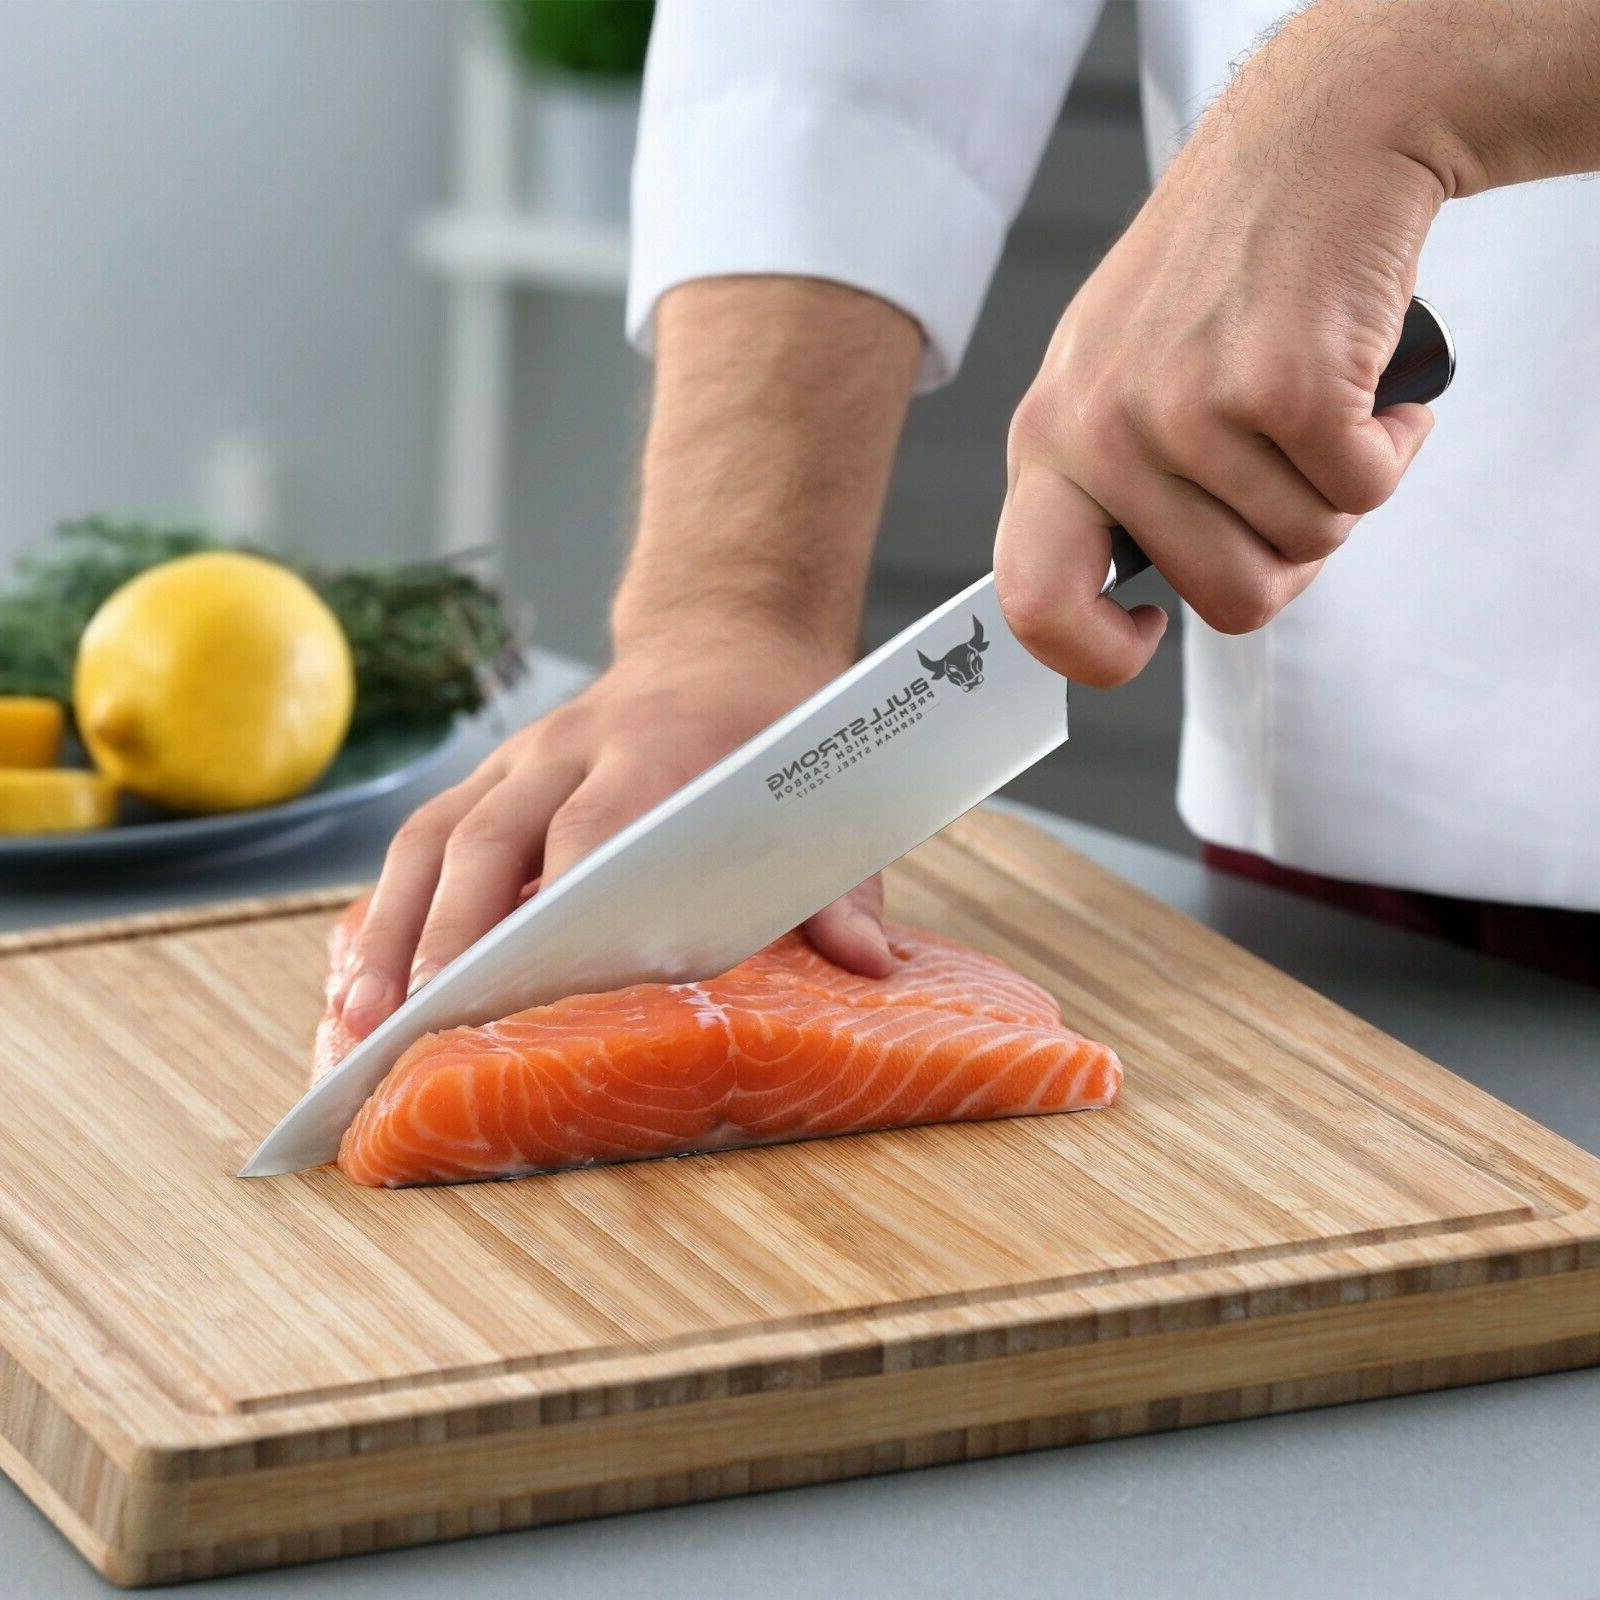 Chef Steel knife